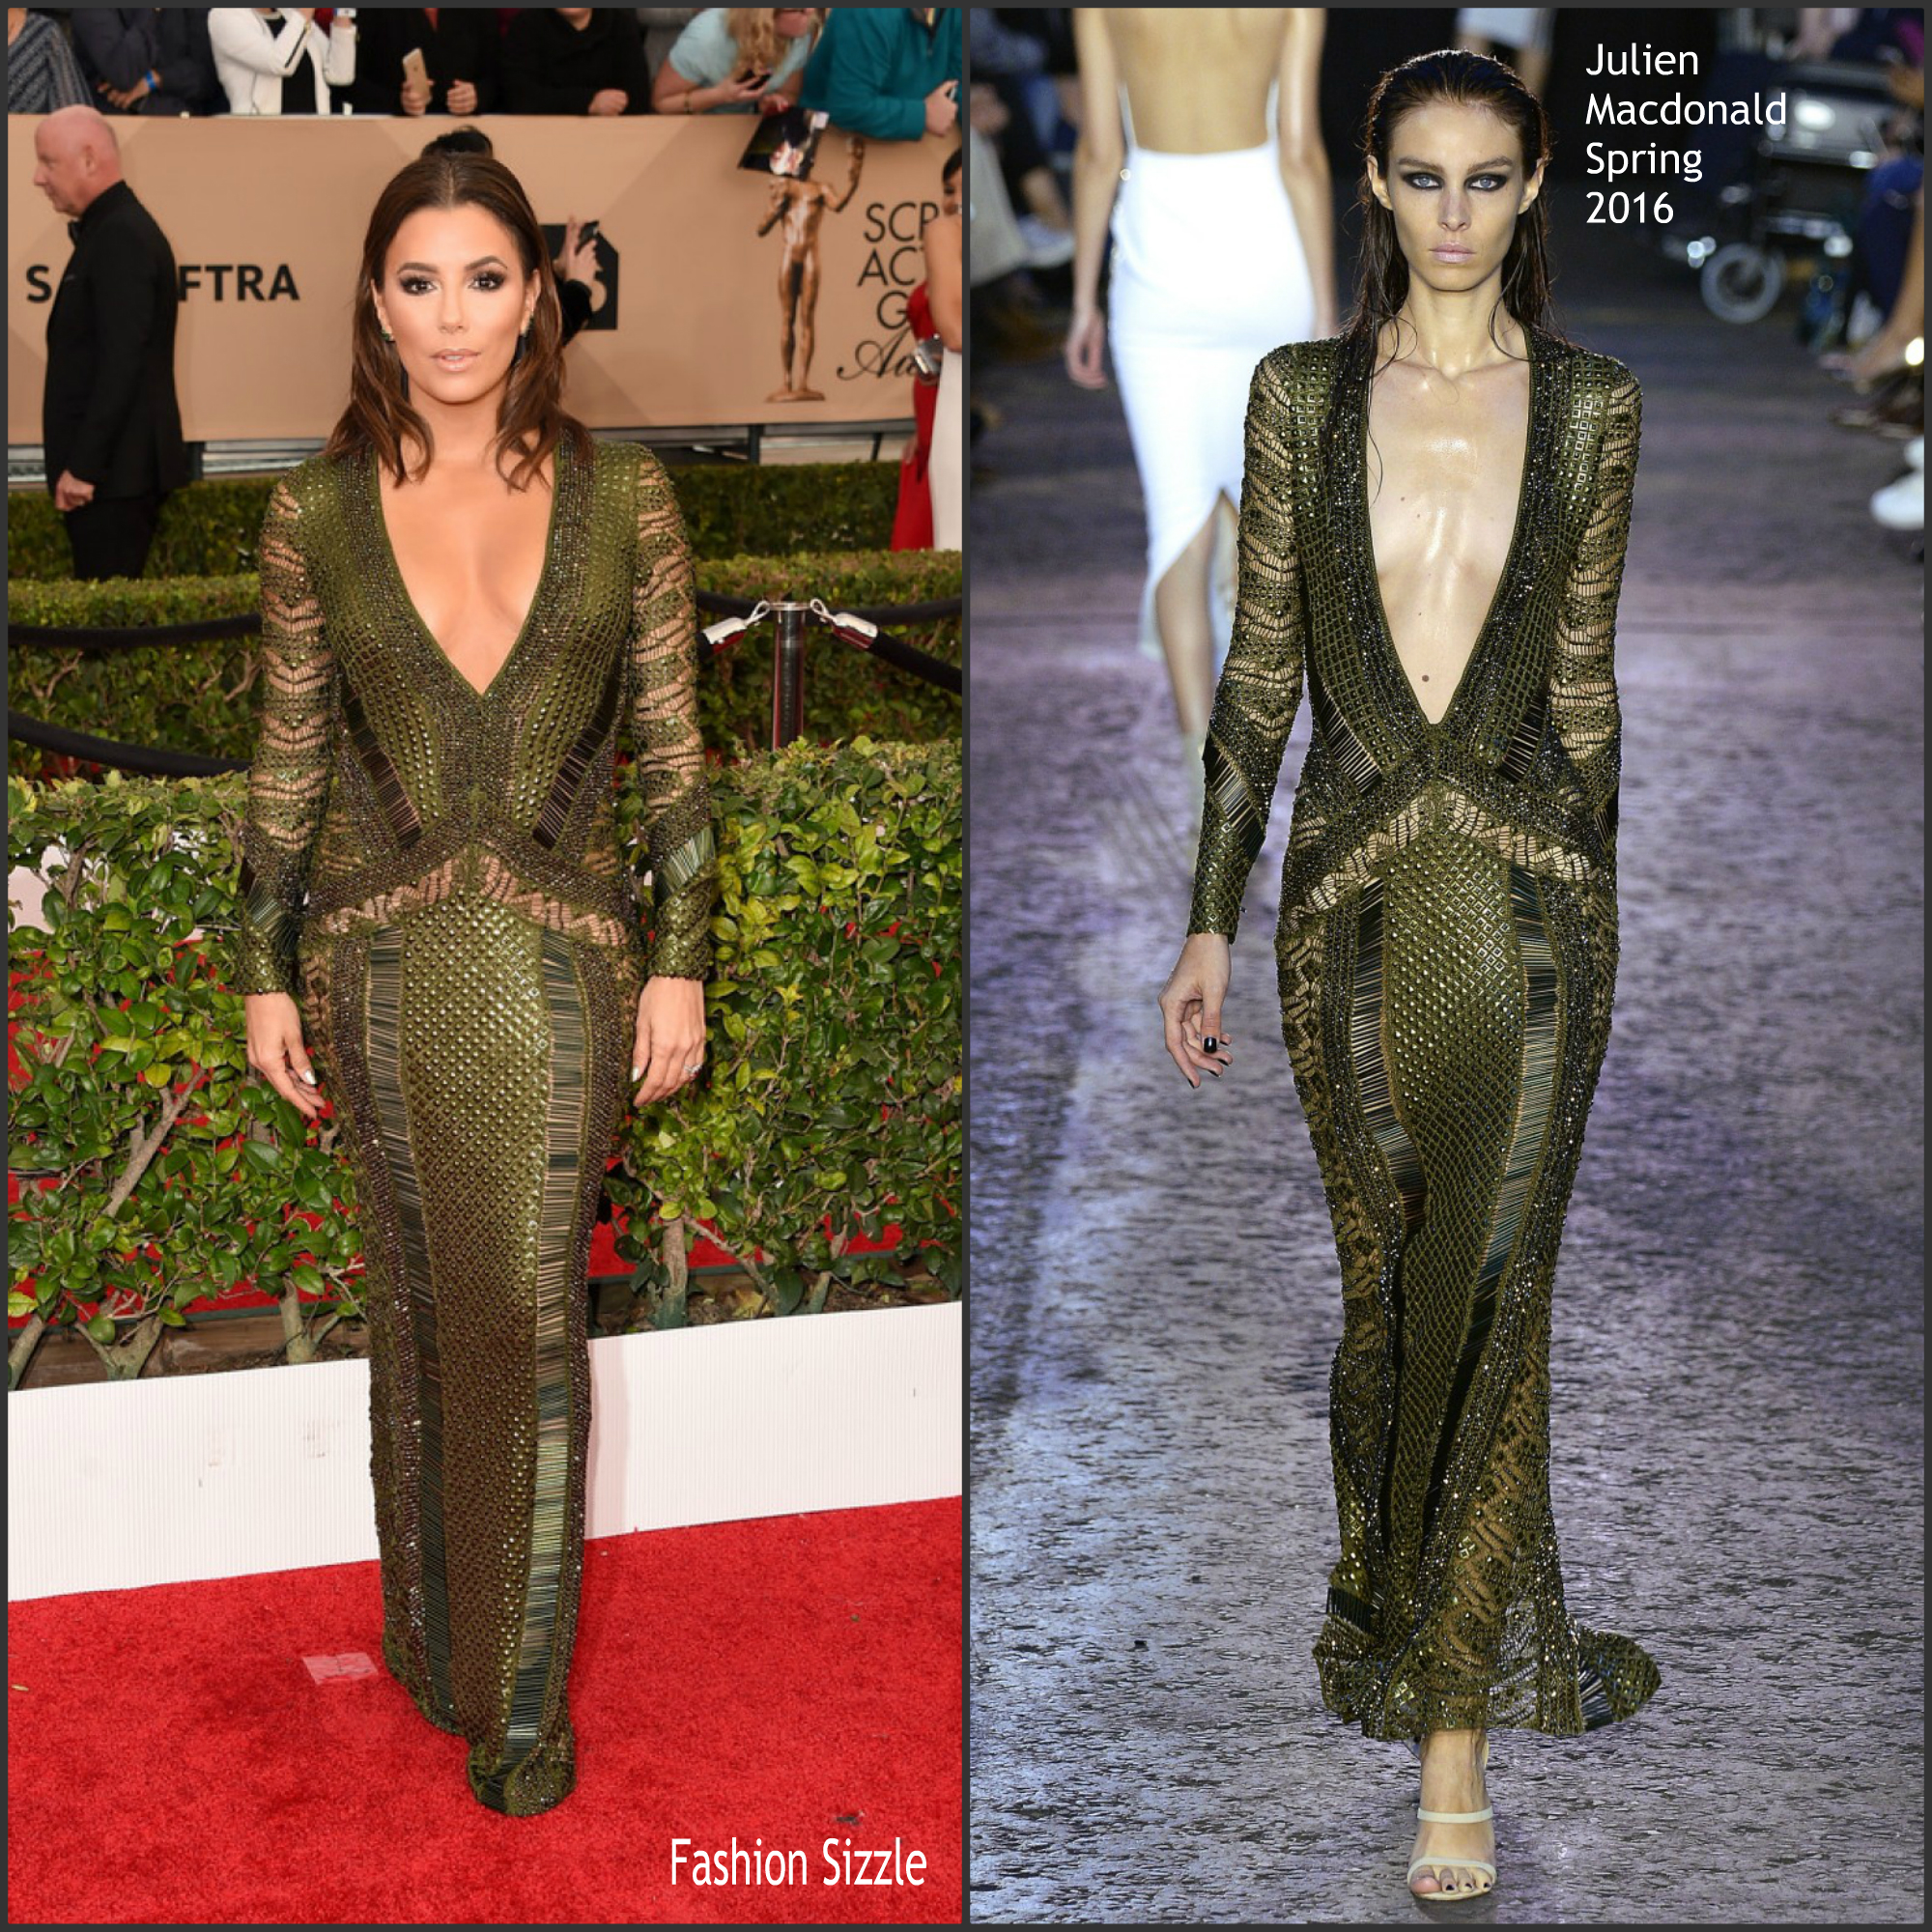 eva-longoria-in-julien-macdonald-2-16-screen-actors-guild-awards